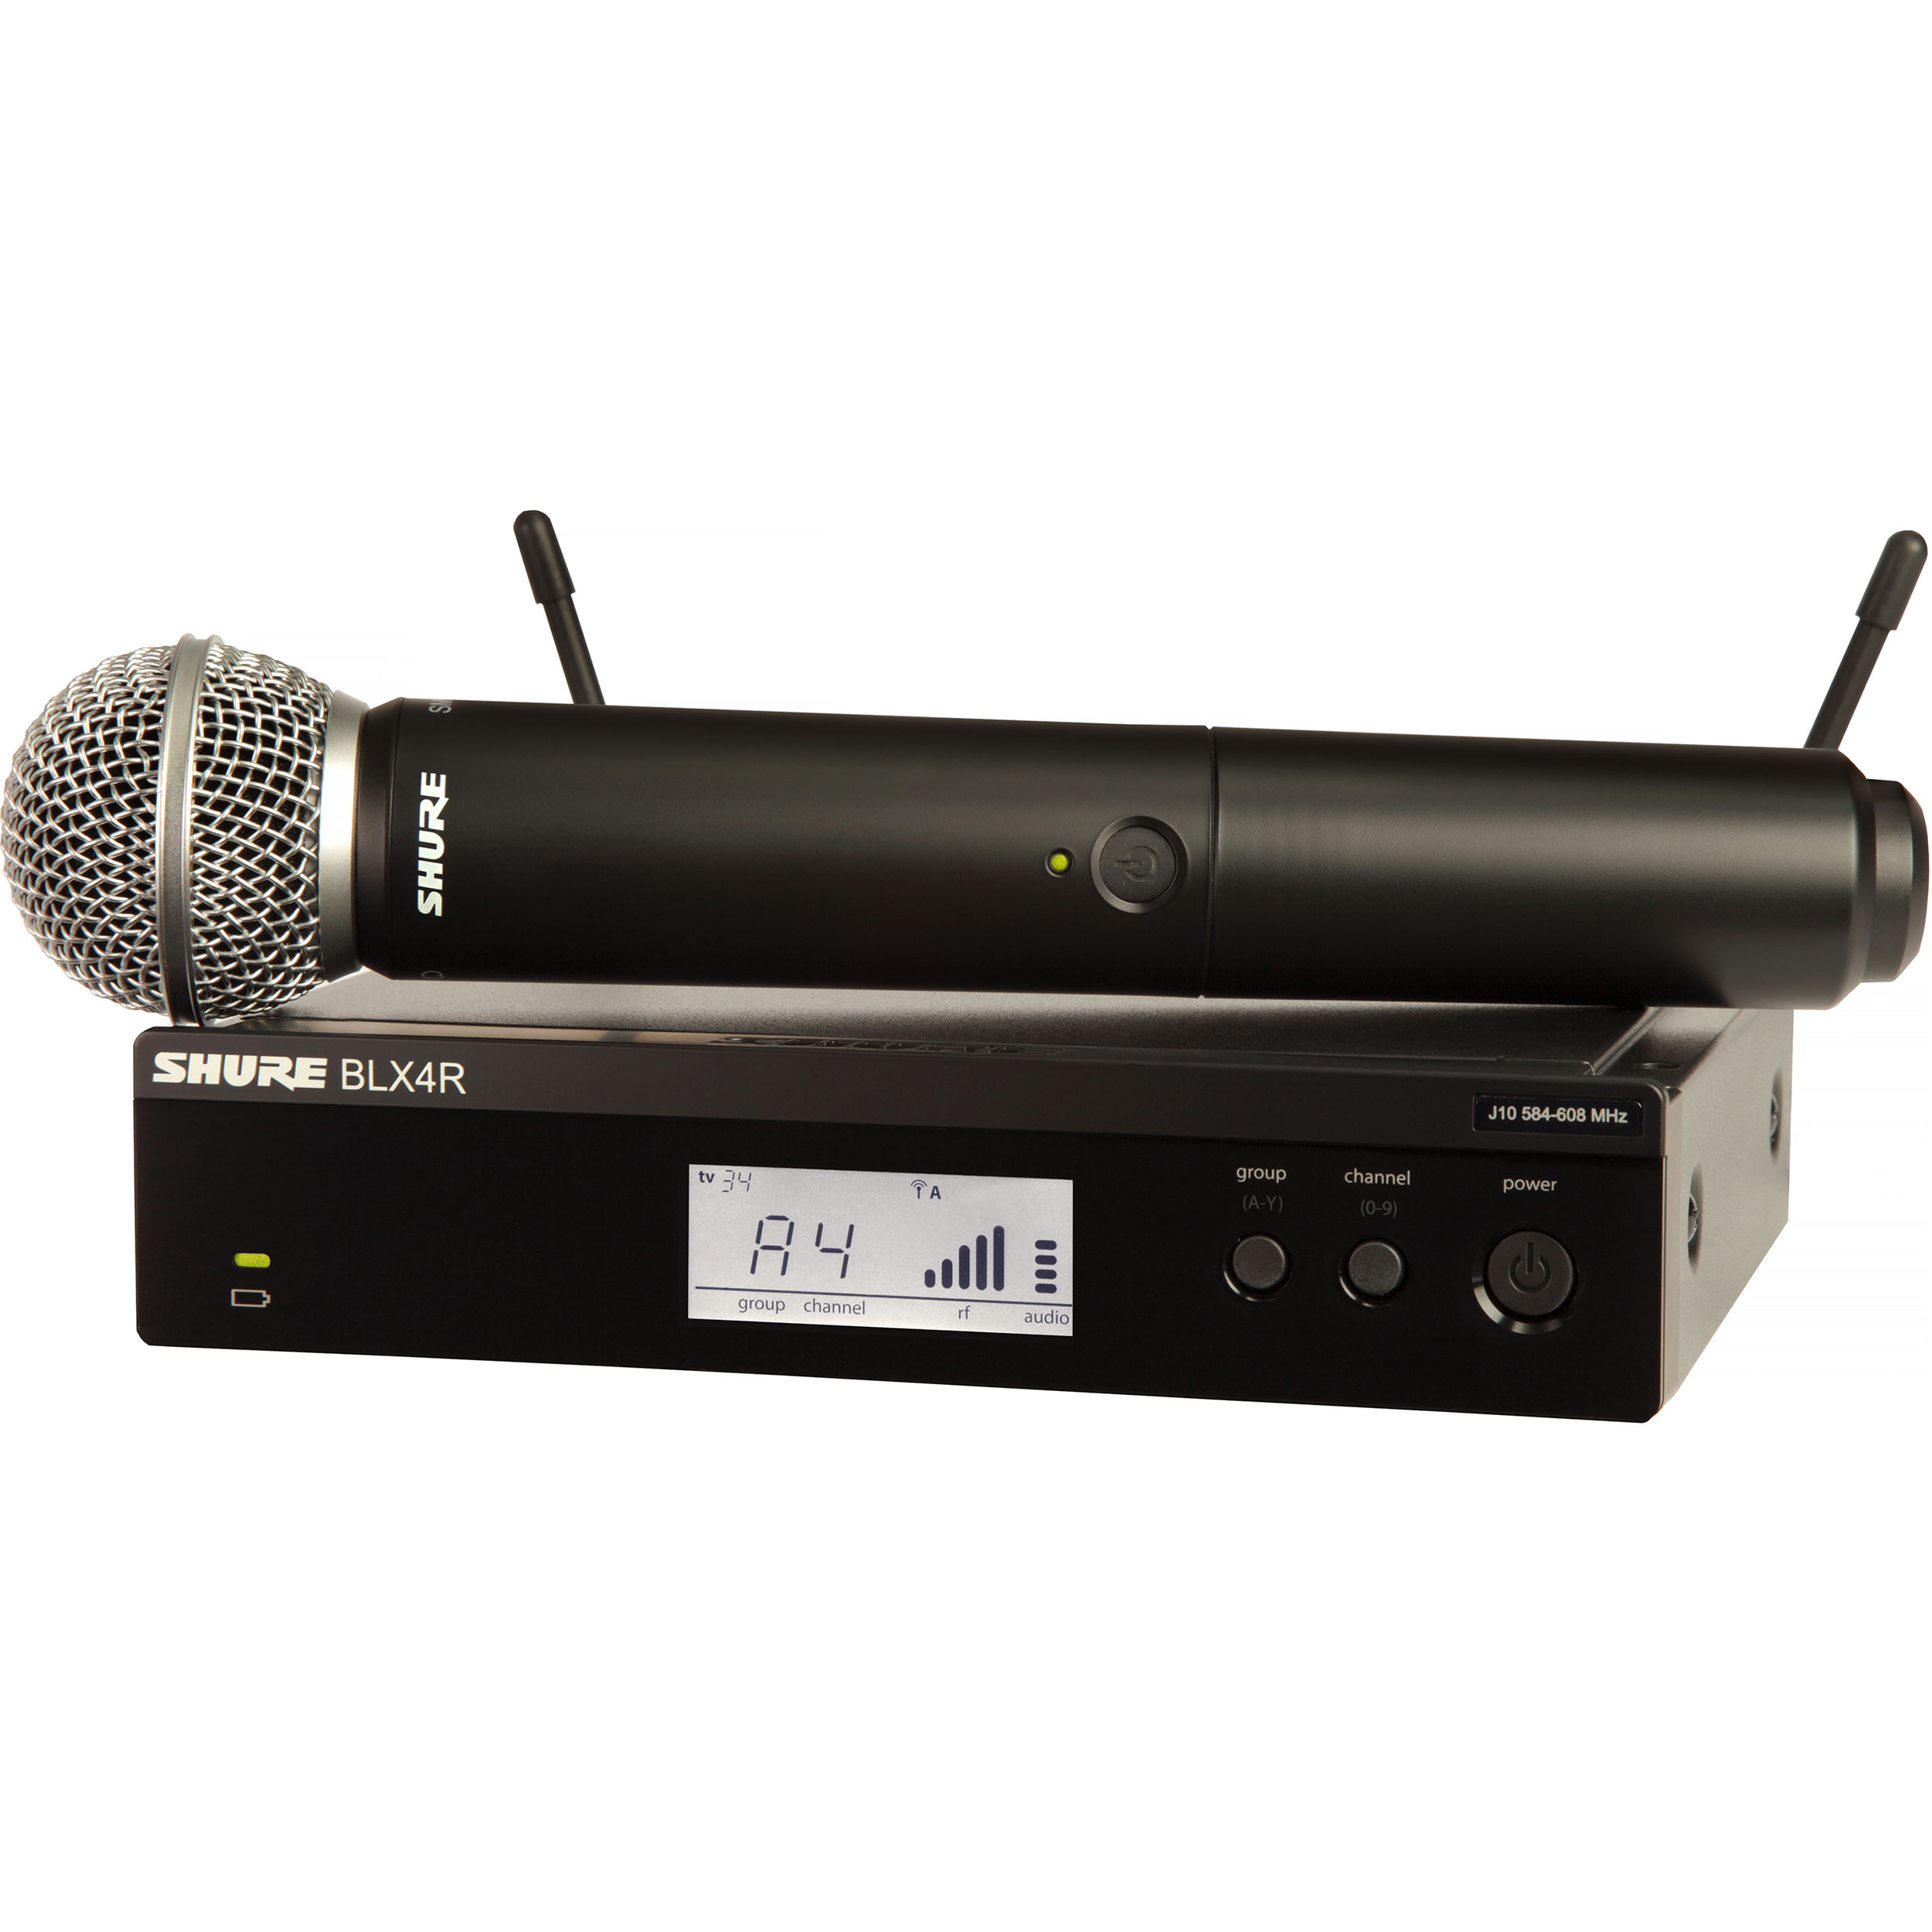 Shure BLX Wireless System with SM58 Microphone, BLX2 Handheld Transmitter, and BLX4R Receiver